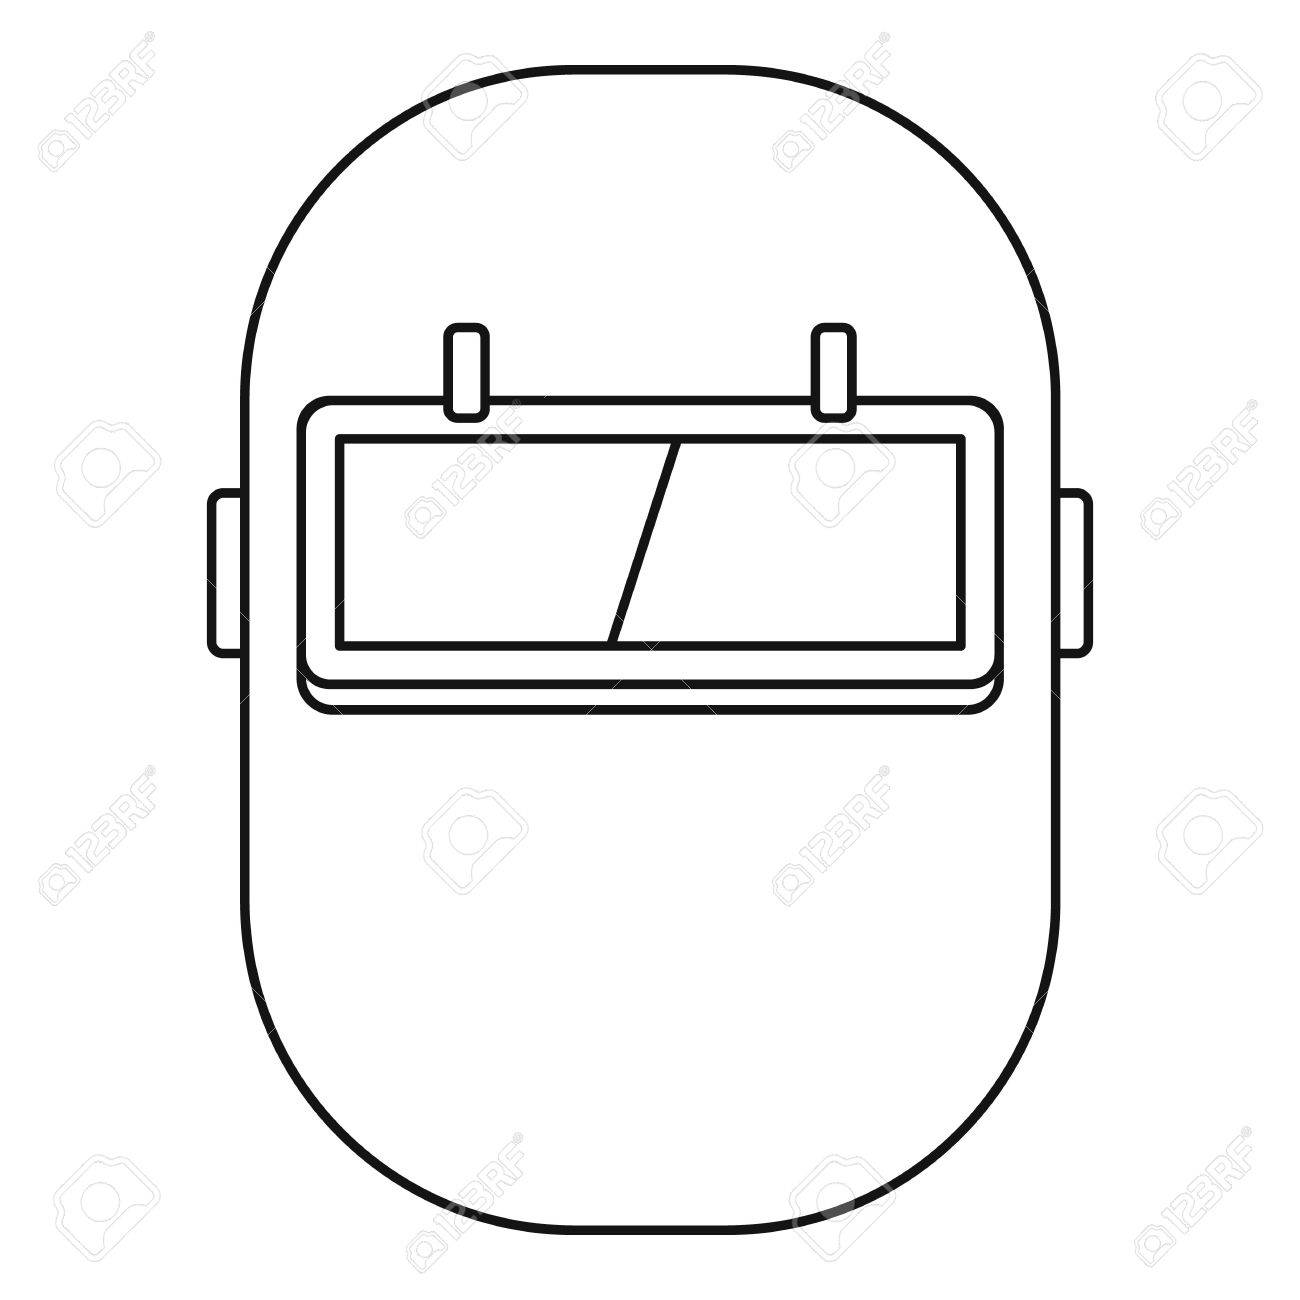 welding mask diagram wiring diagramwelding mask icon in outline style isolated vector illustrationvector welding mask icon in outline style isolated